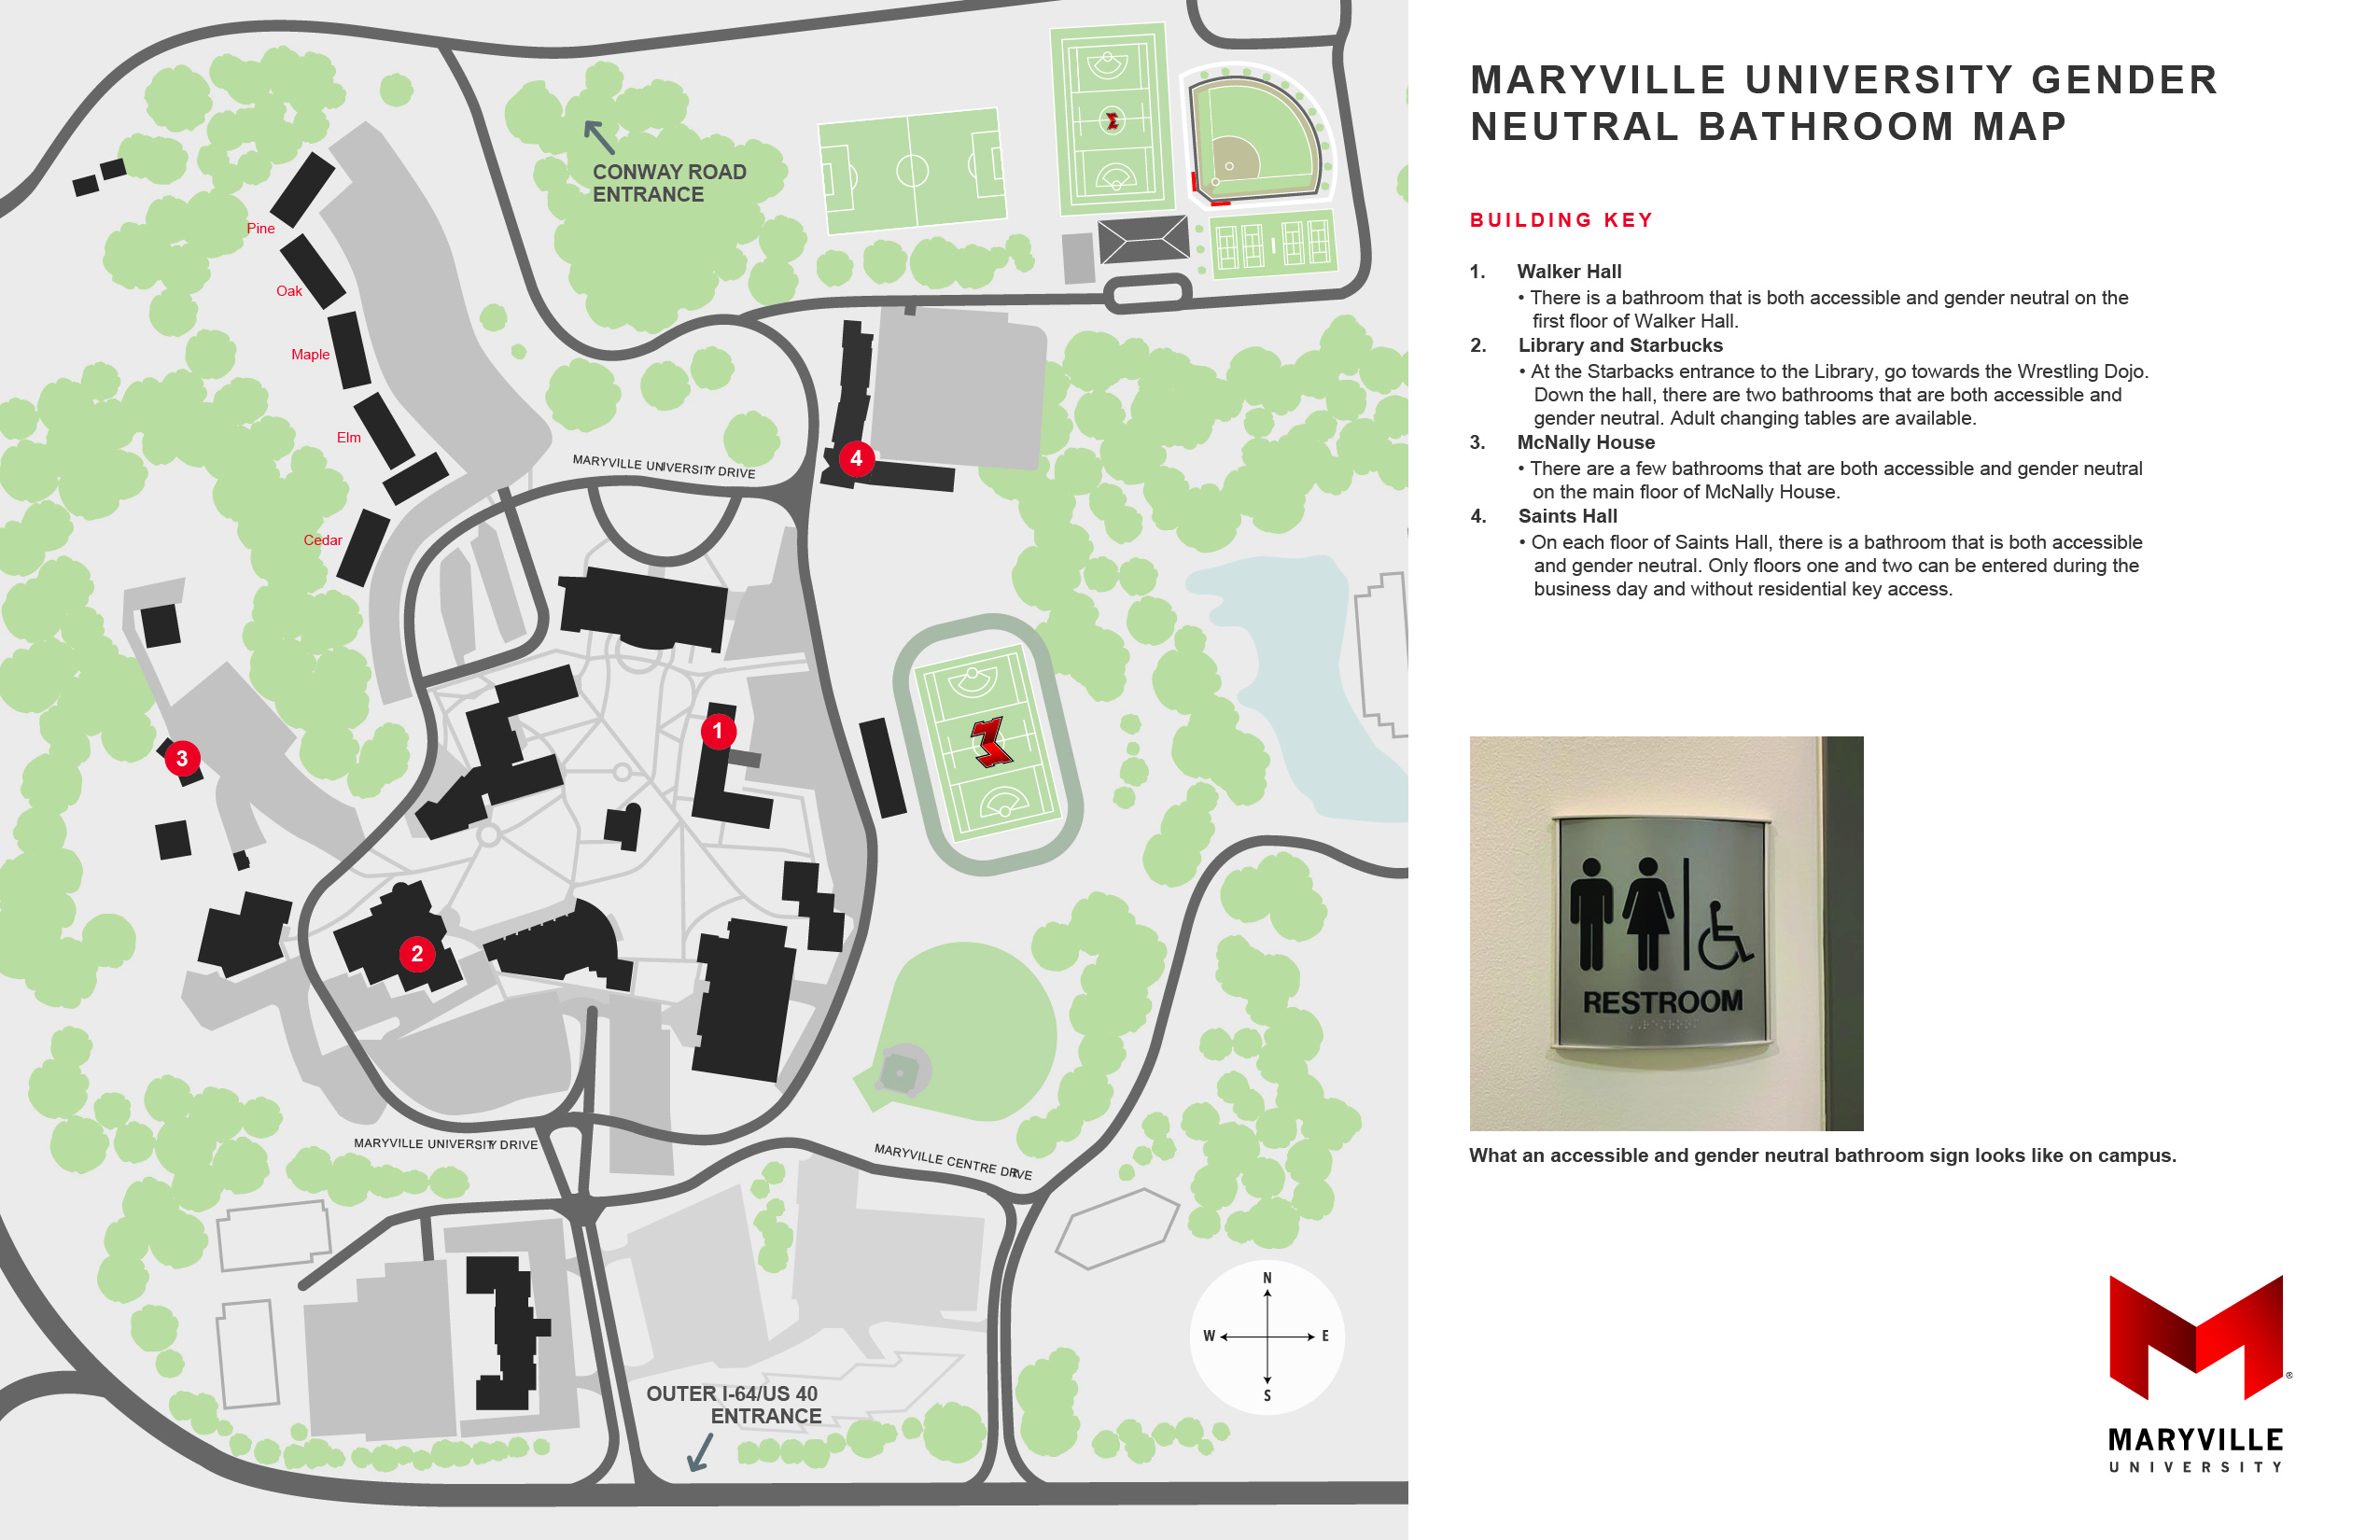 picture of campus map that shows gender neutral bathroom locations